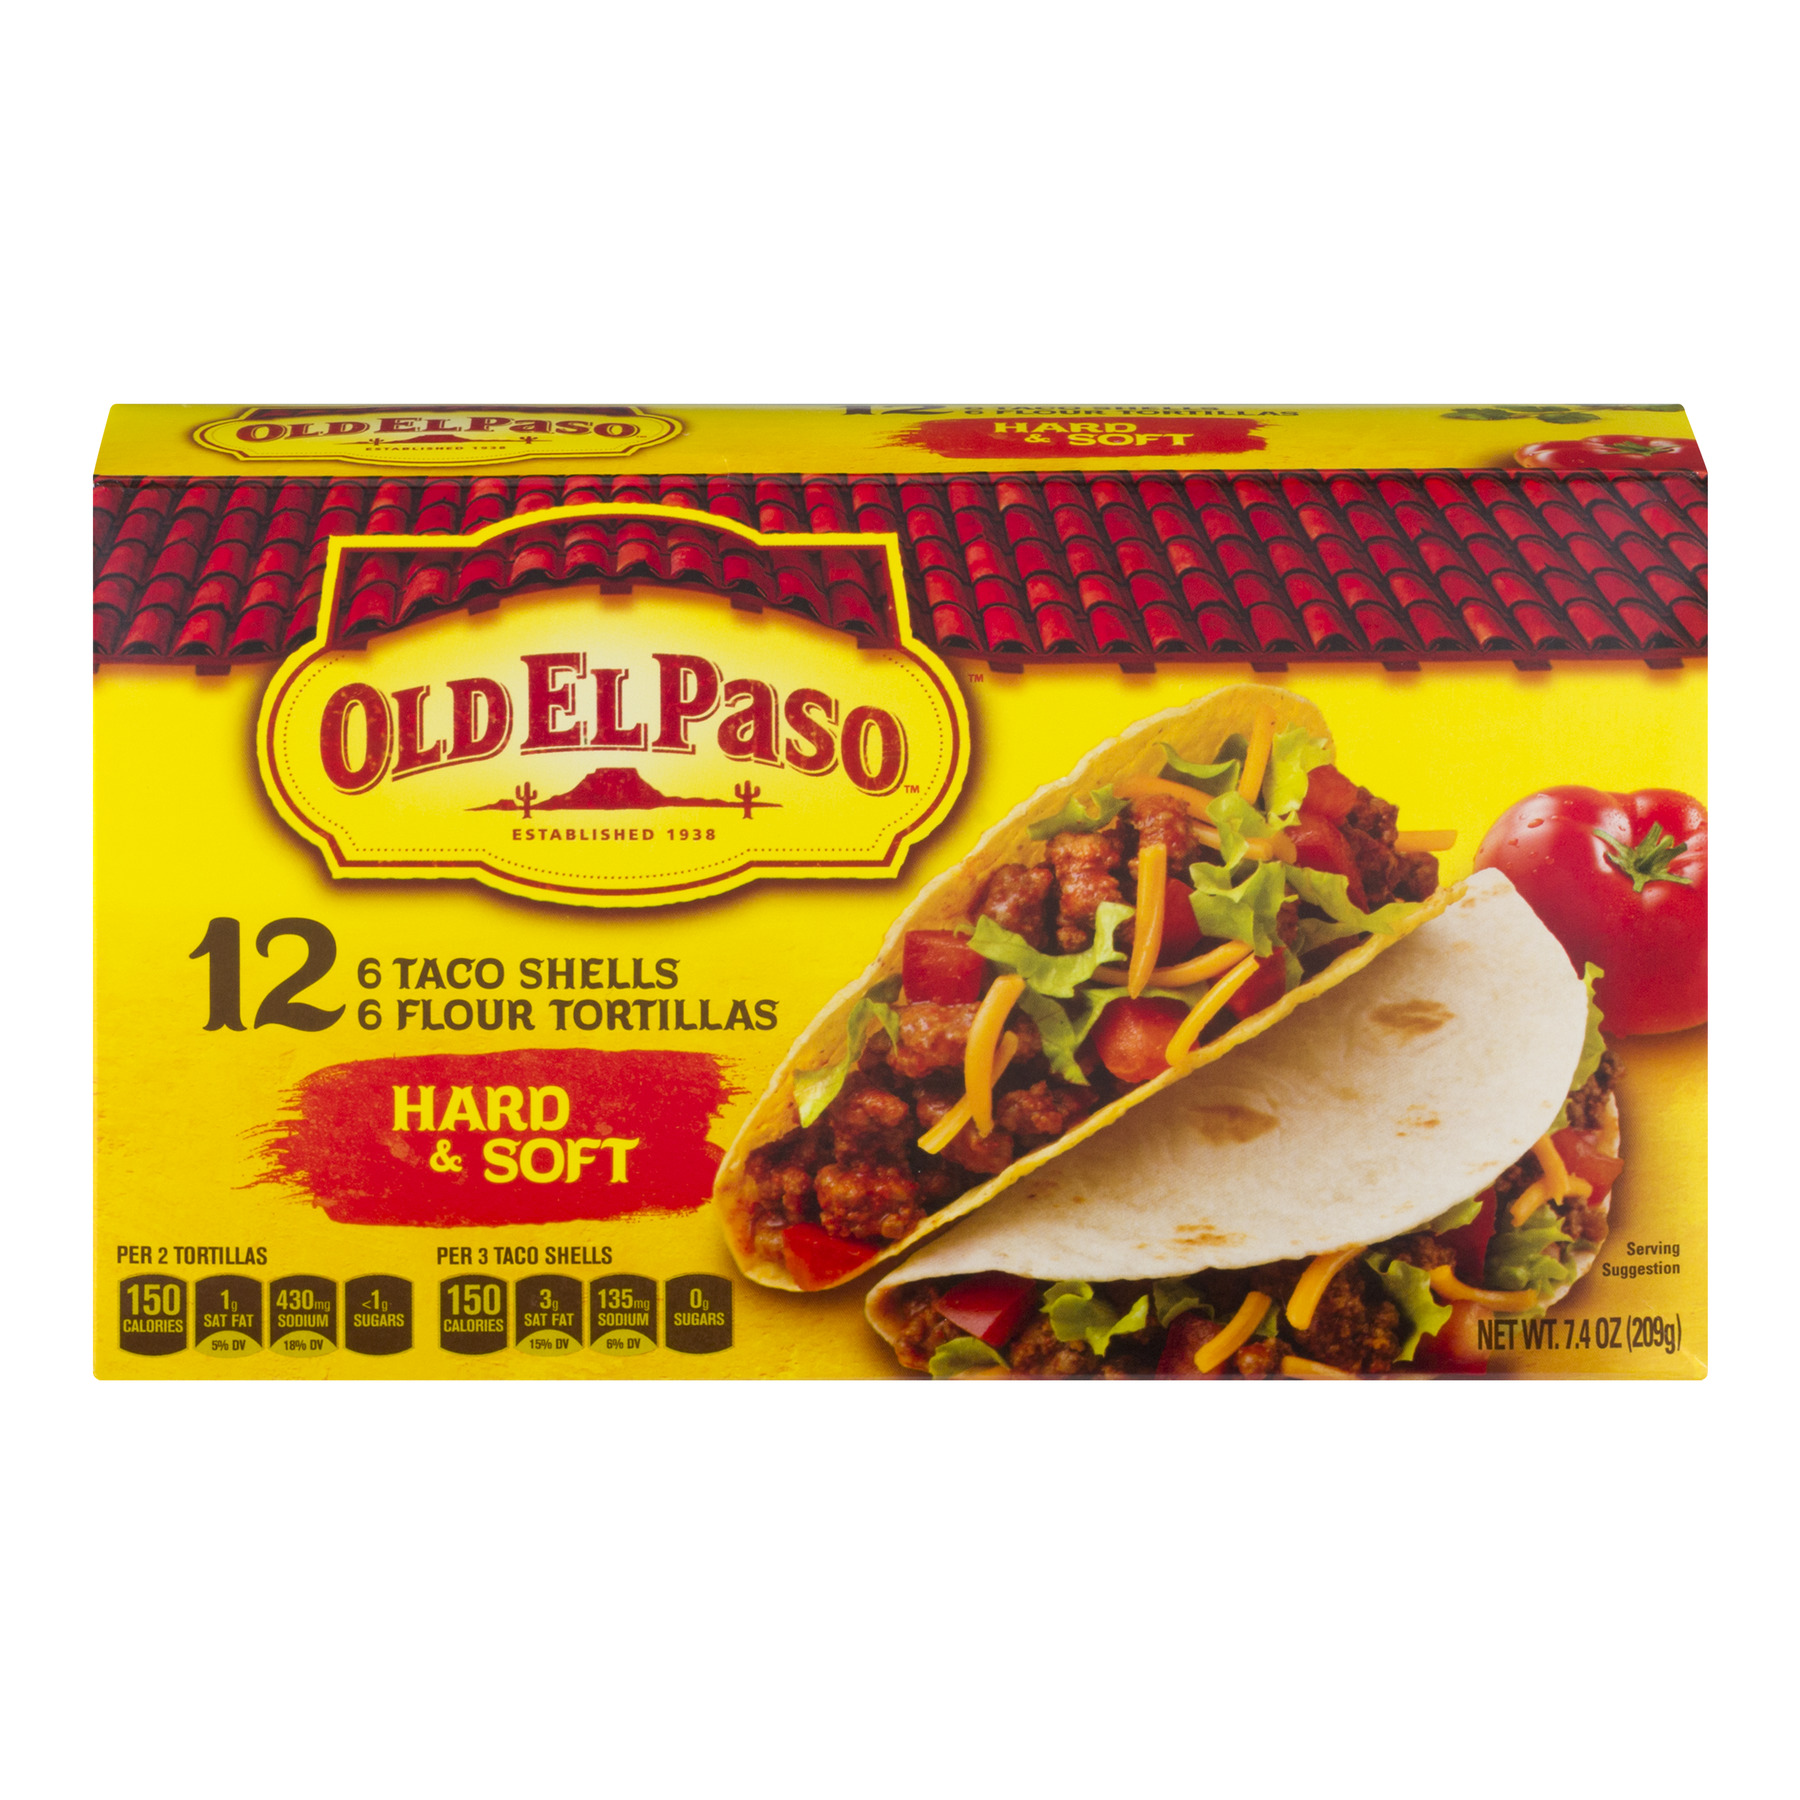 Old El Paso™ Hard and Soft Taco Shells 12 ct 7.4 oz Box, 7.4 OZ